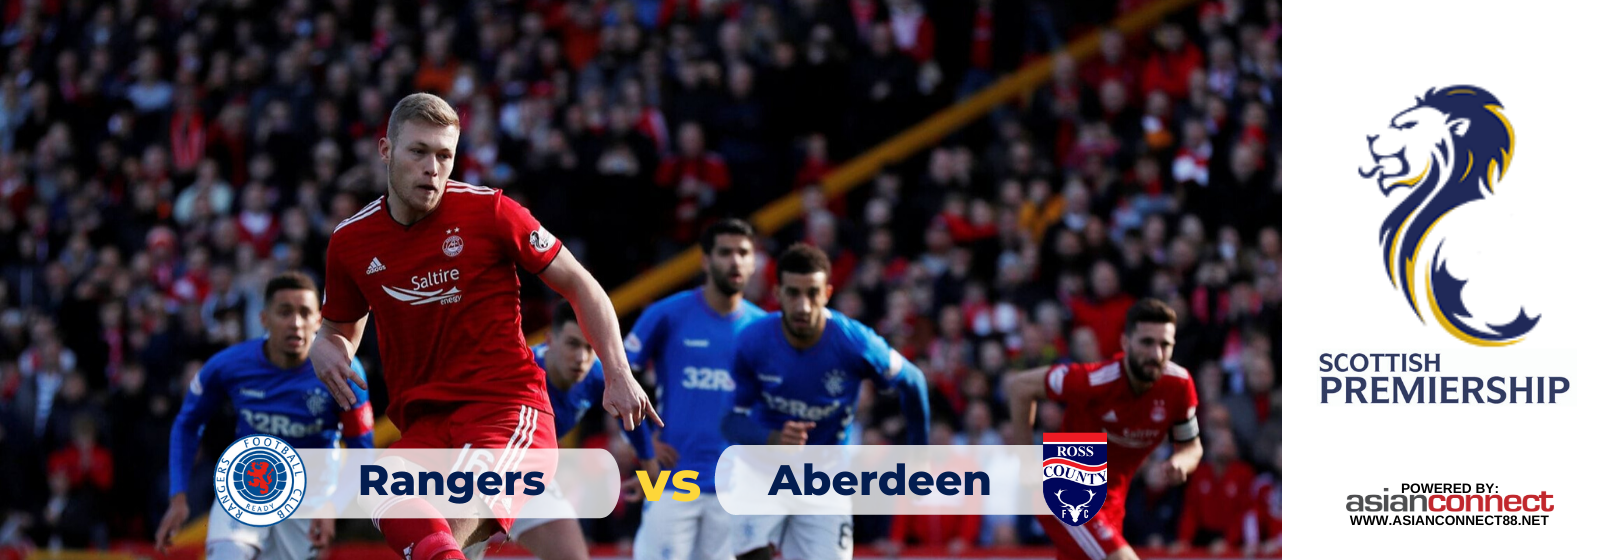 Asianconnect: Glasgow Rangers vs Aberdeen Odds for February 01, 2020